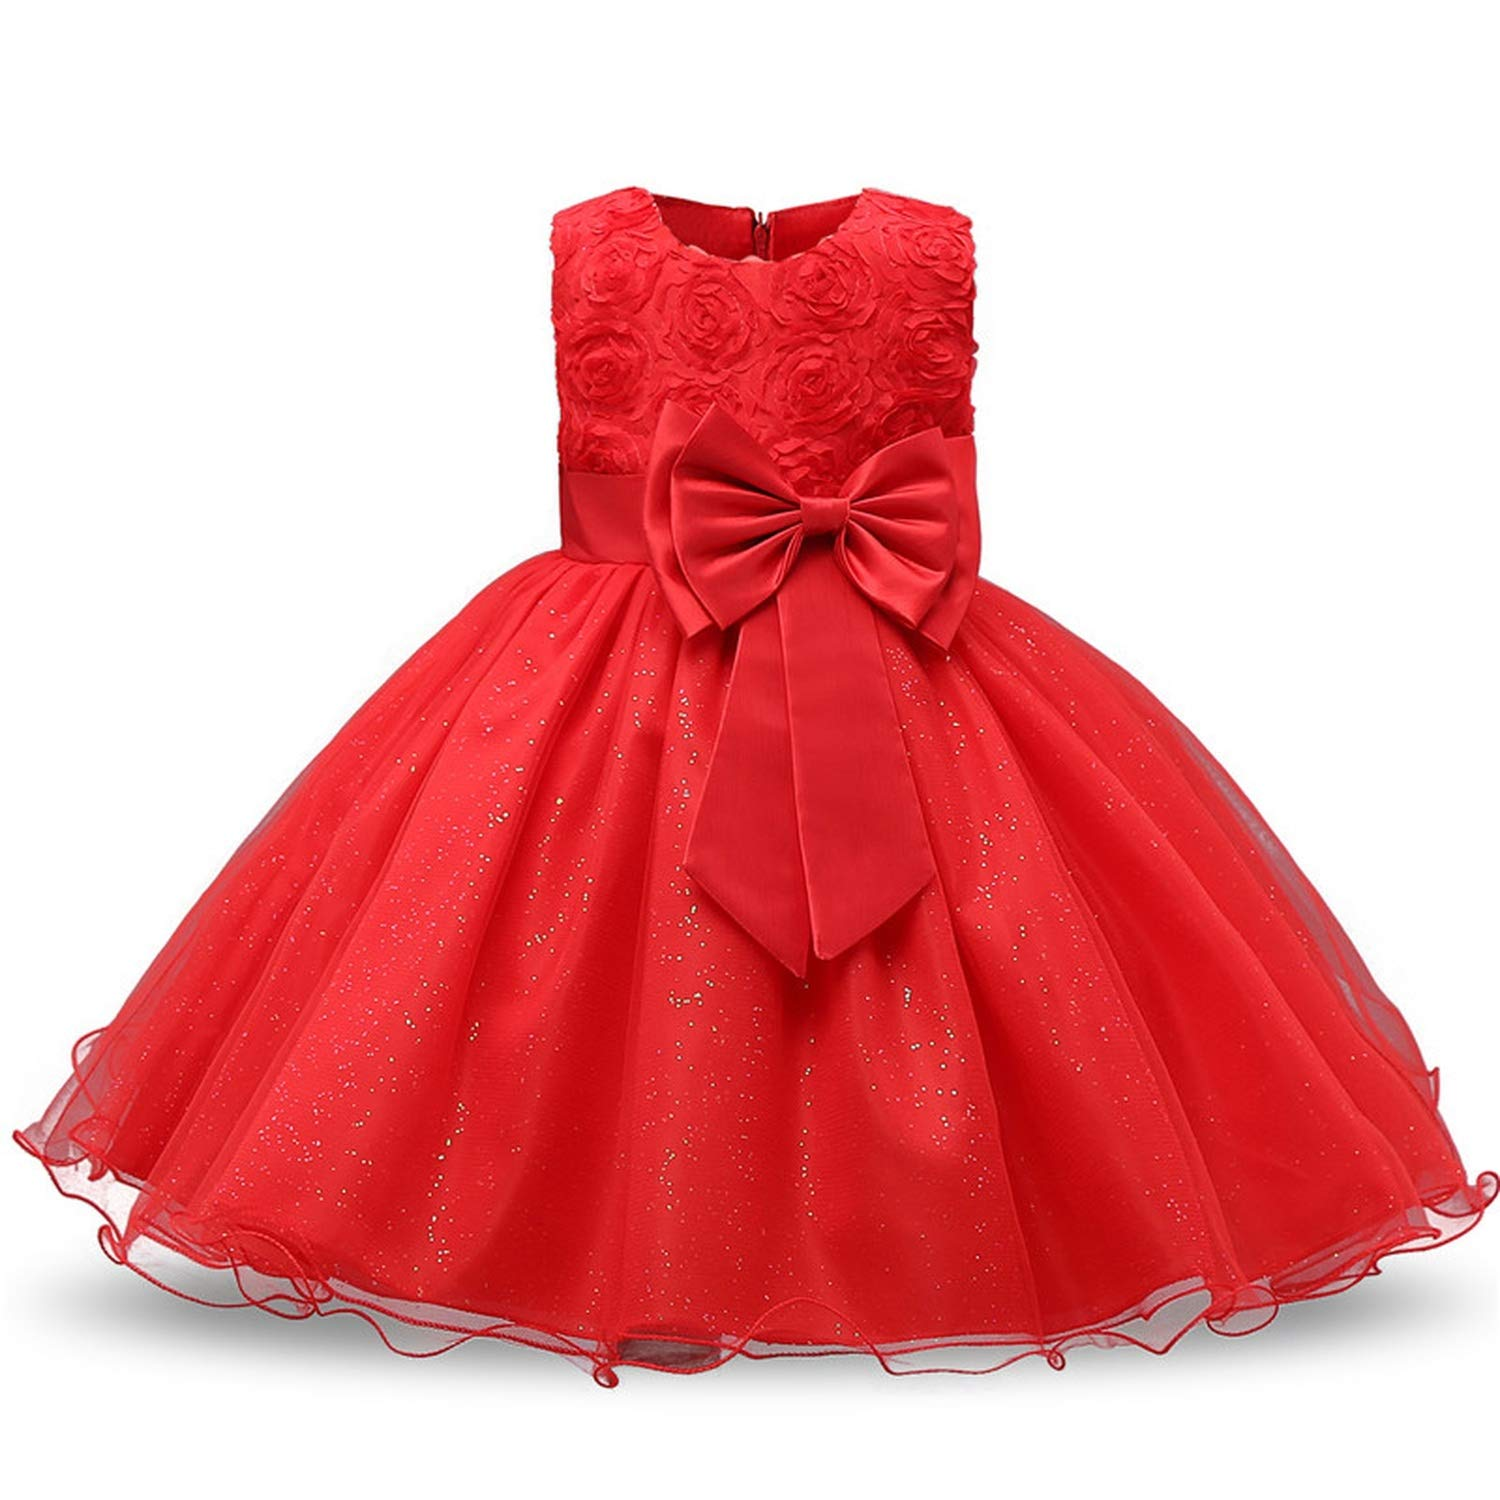 56942570d0c Amazon.com  Flower Sequins Princess Toddler Girl Dress Summer 2018 Christmas  Party Tutu Tulle Dresses for Children 2 3 4 5 Birthday